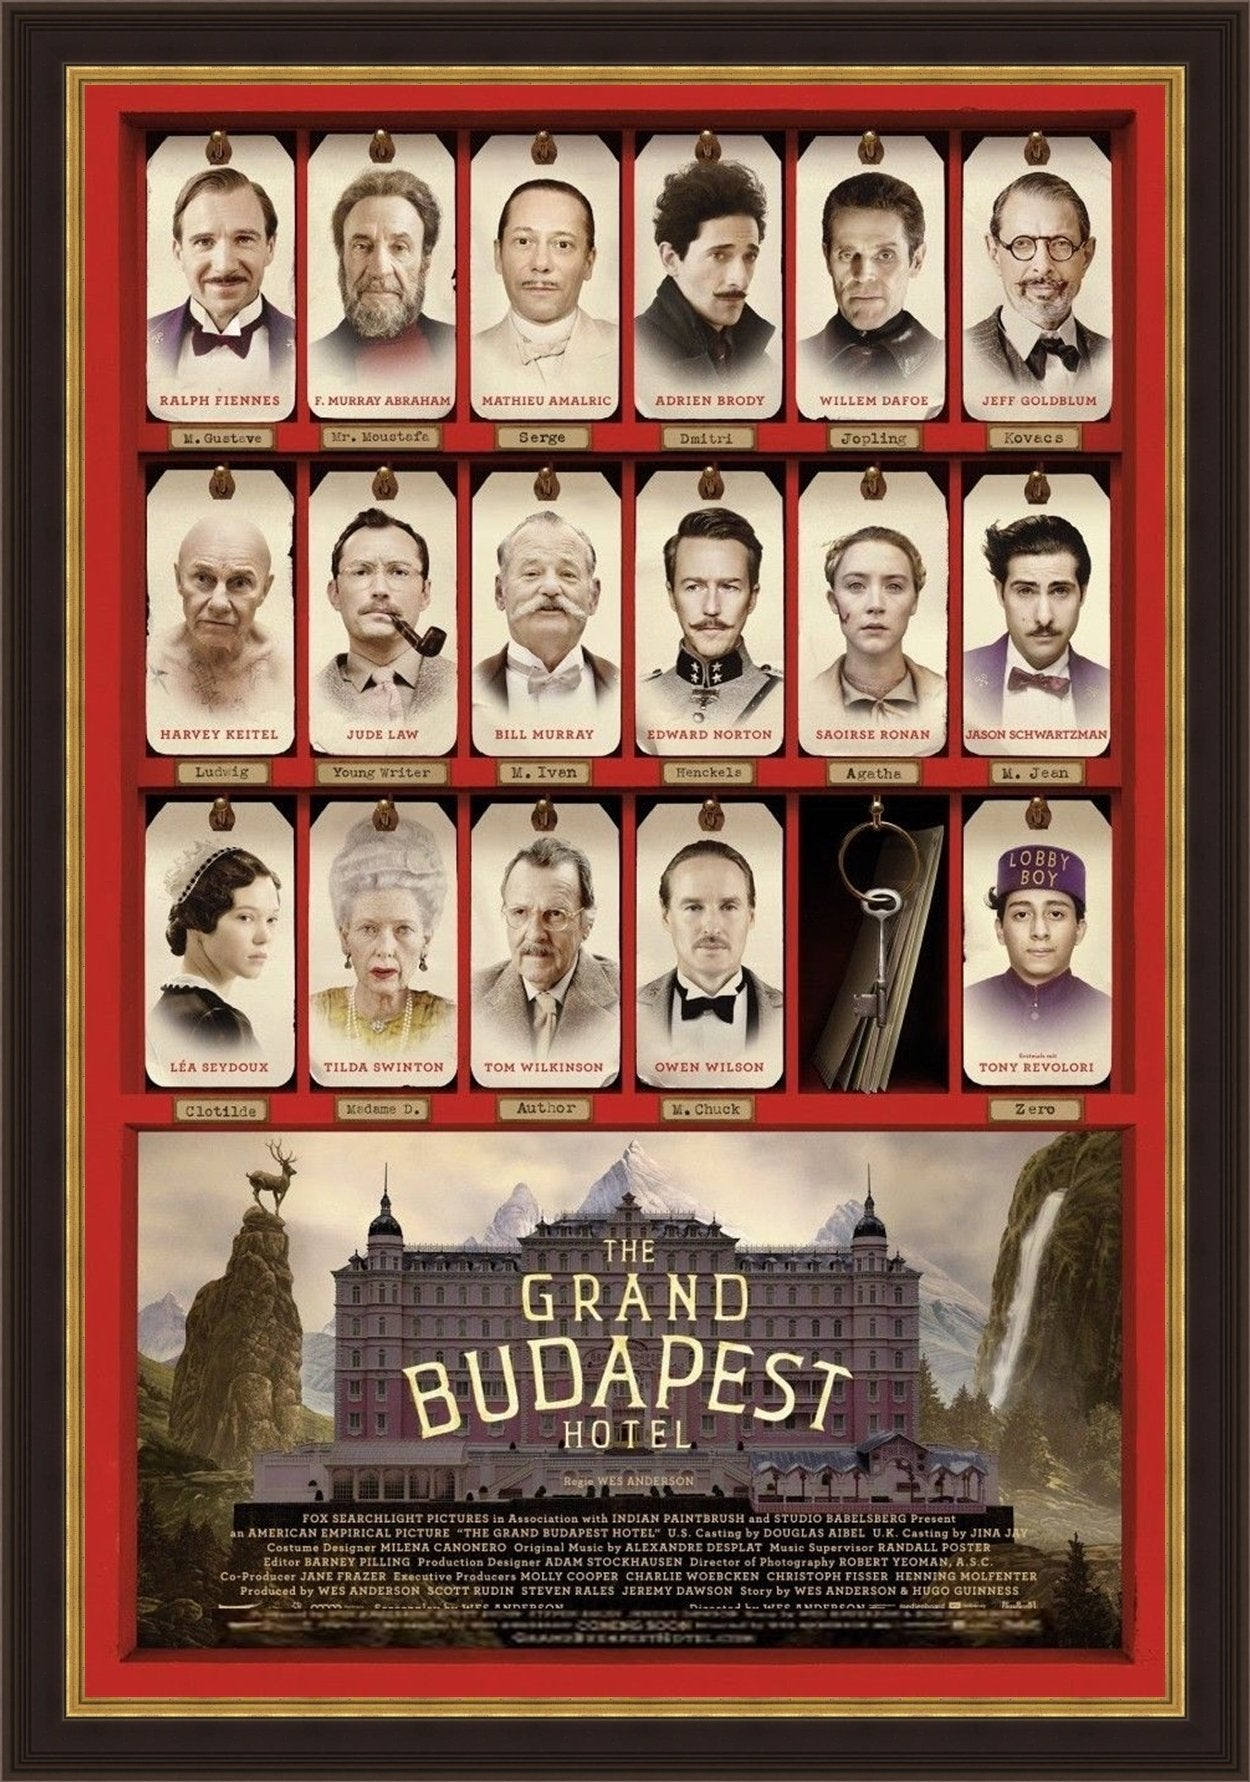 An original movie poster for the Wes Anderson film